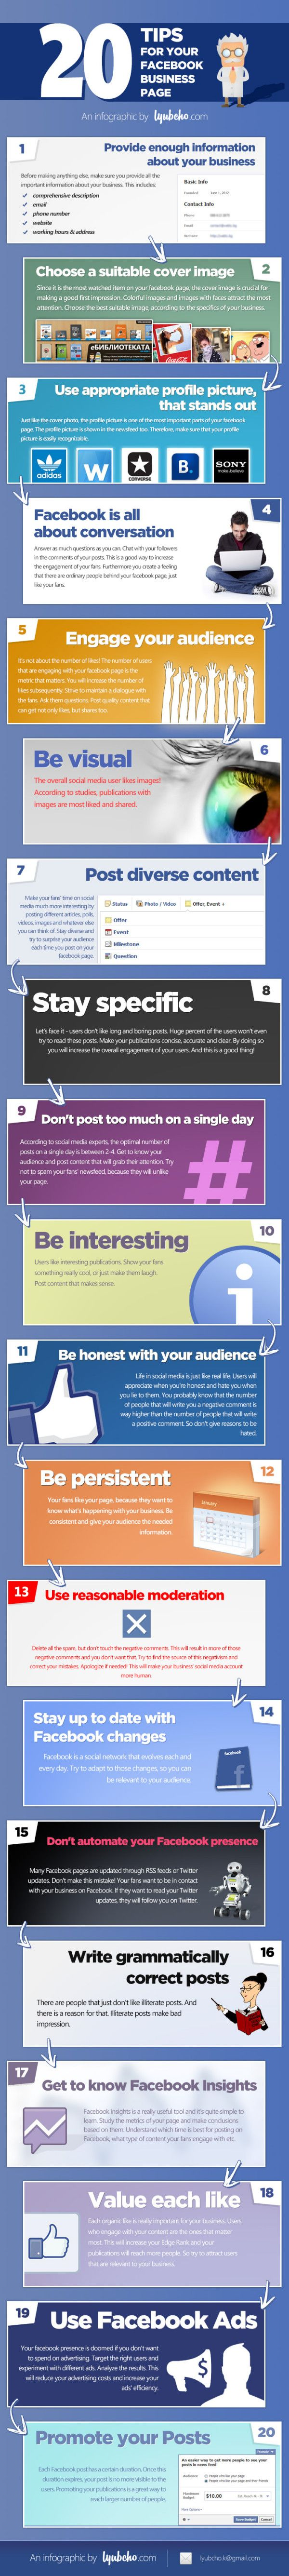 SOCIAL MEDIA  20 Essential Tips For Your Facebook Business Page